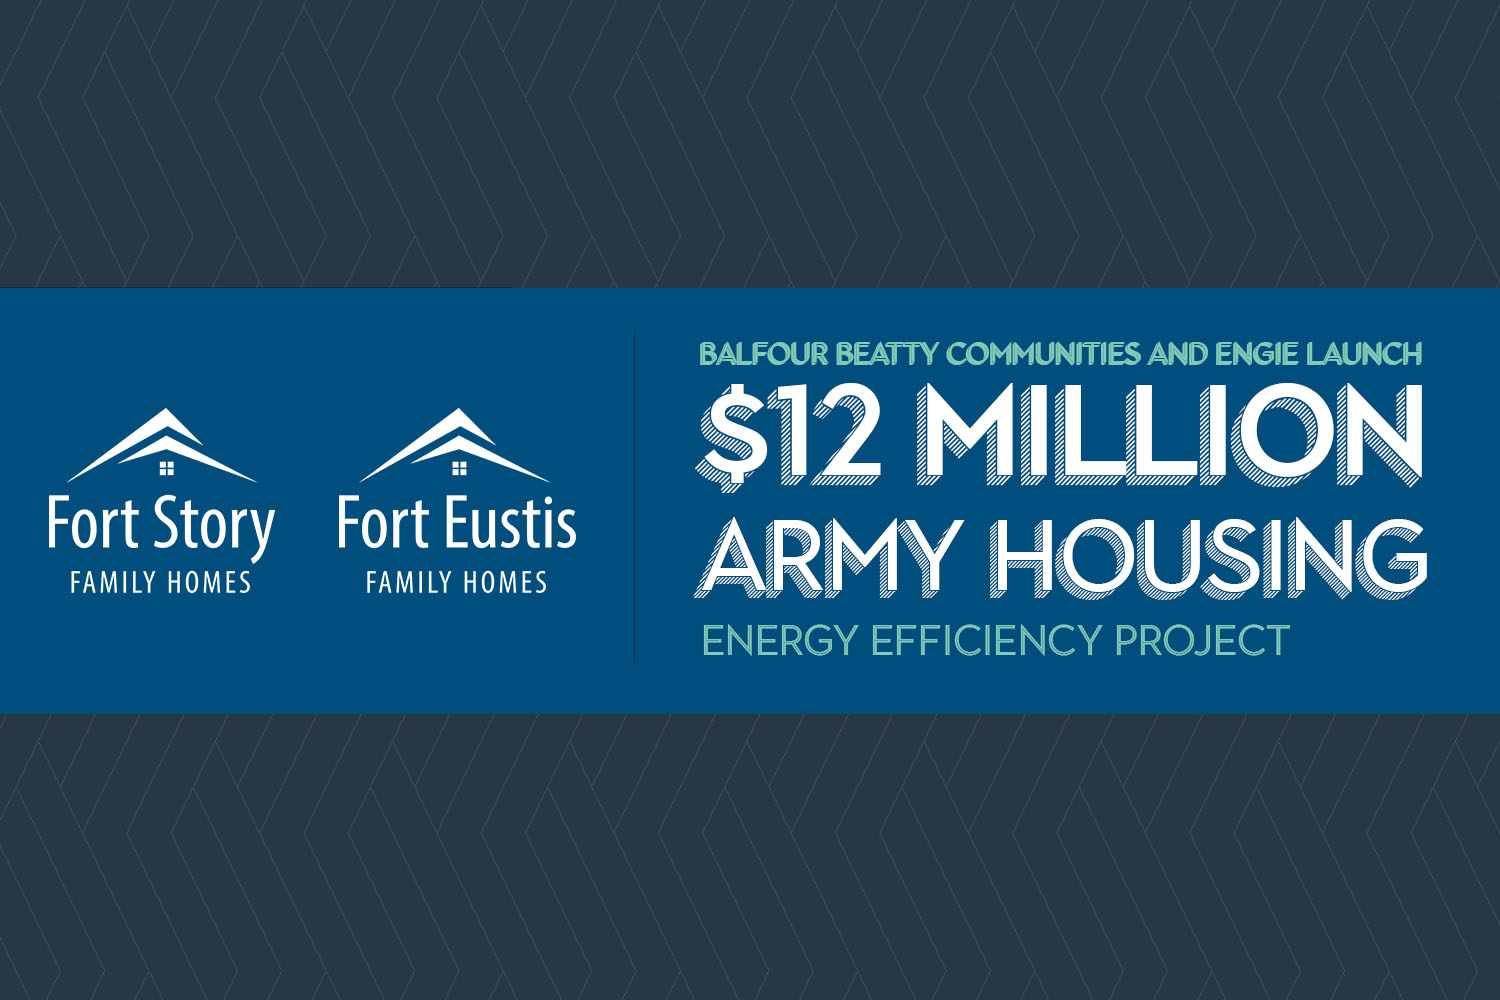 Balfour Beatty Communities and ENGIE Launch  $12 Million Army Housing Energy Efficiency Project